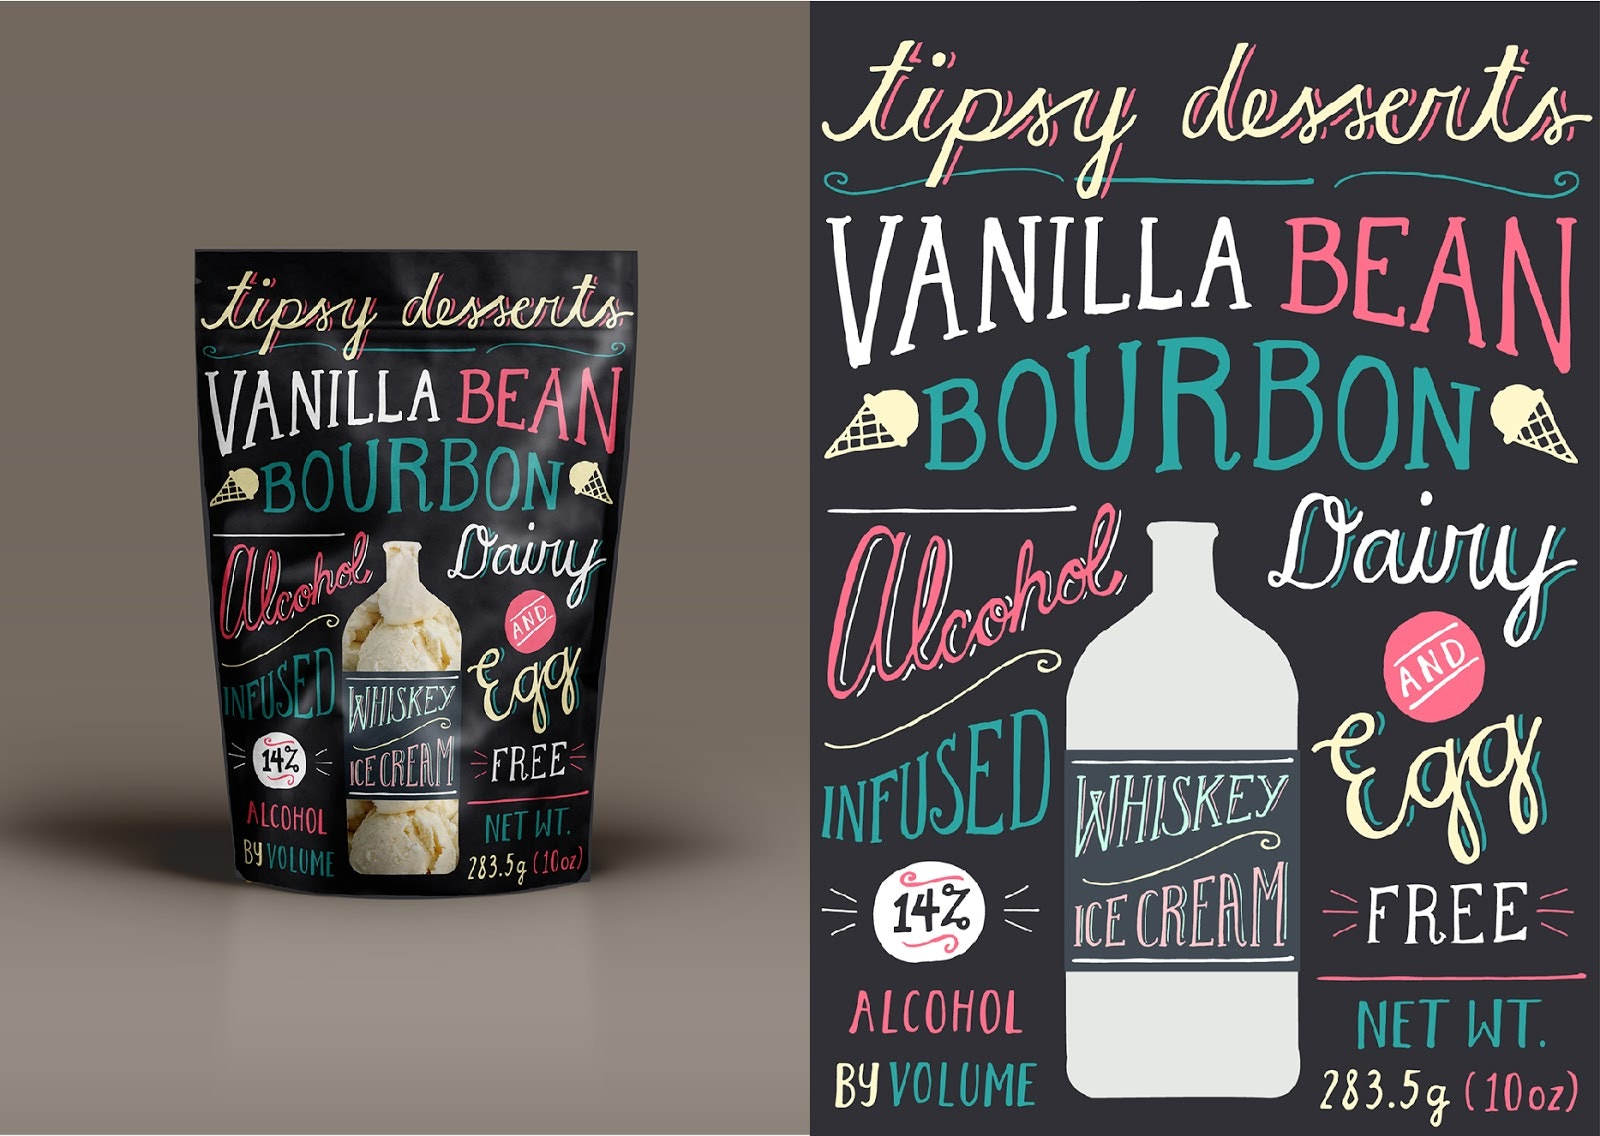 Whiskey Ice Cream whimsical font